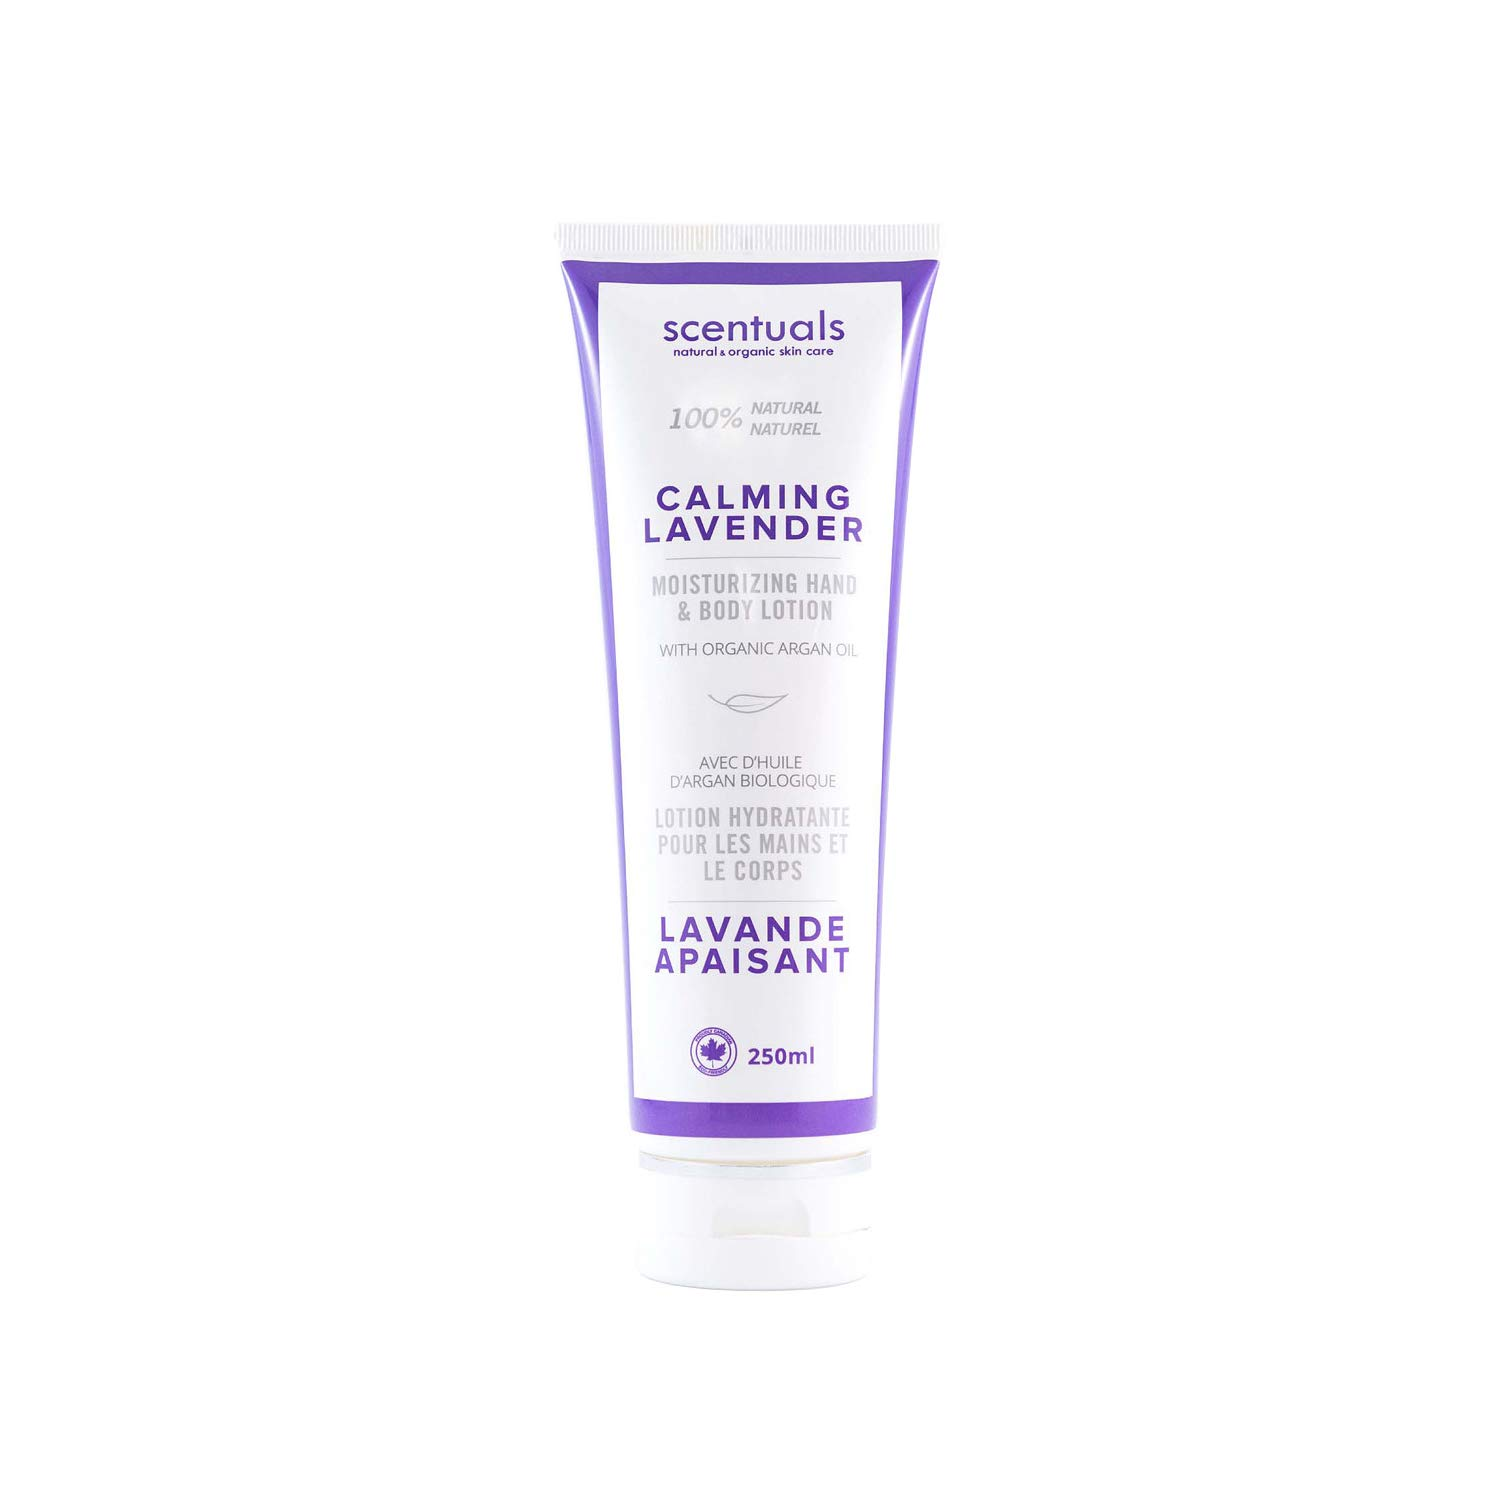 Scentuals 100% Natural Calming Lavender Hand & Body Lotion, White, 8.45 Fluid Ounce